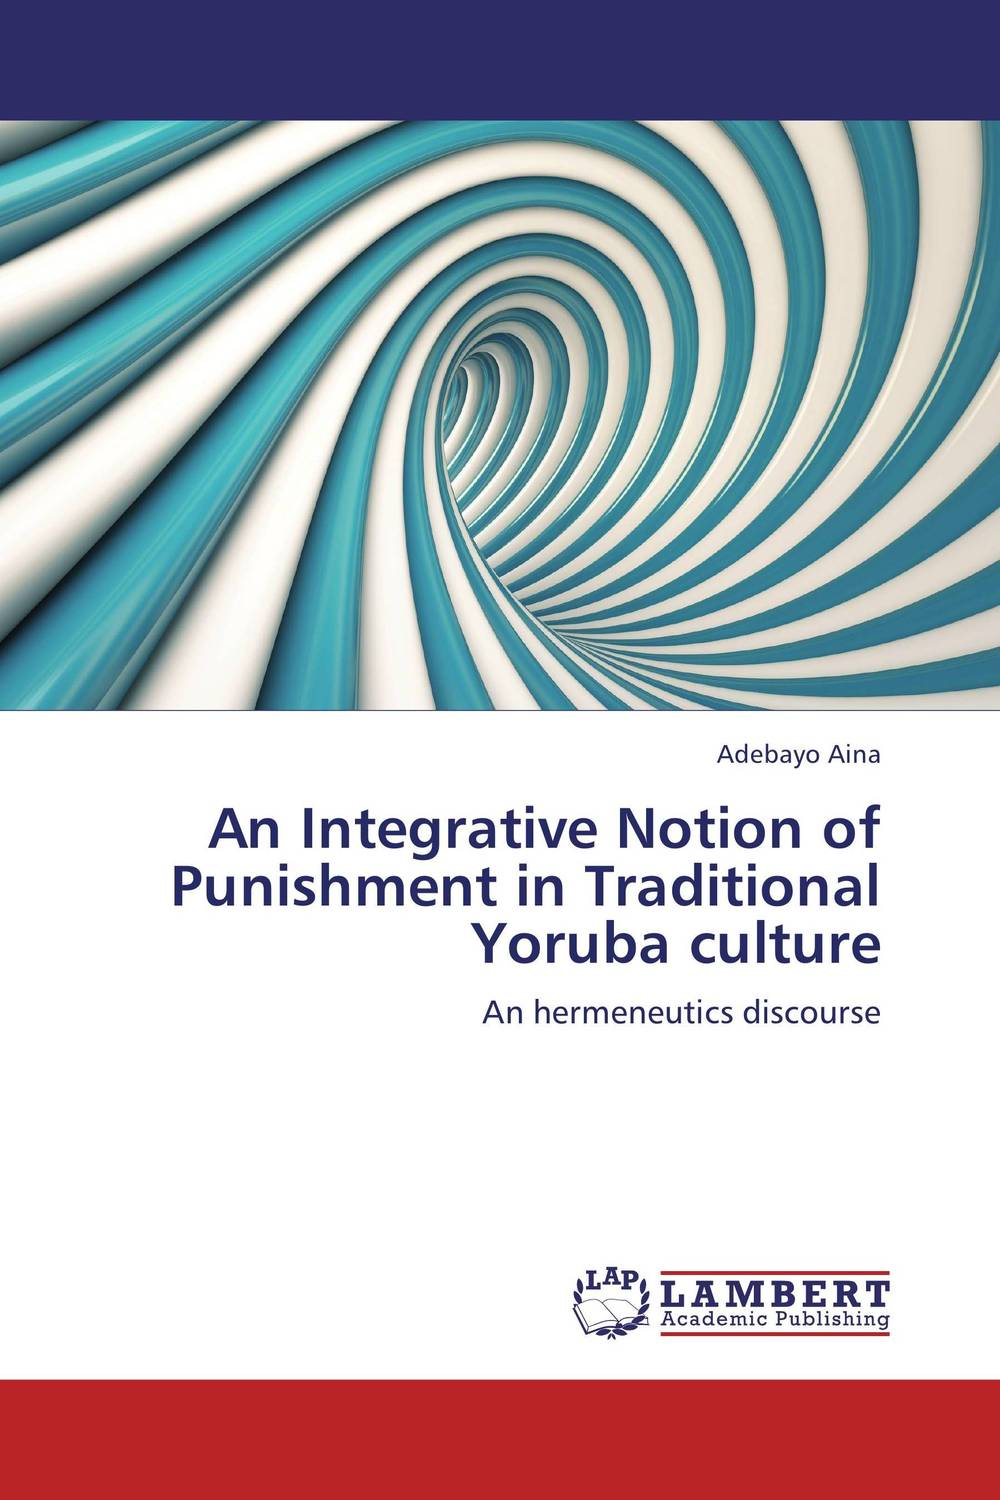 цена на An Integrative Notion of Punishment in Traditional Yoruba culture